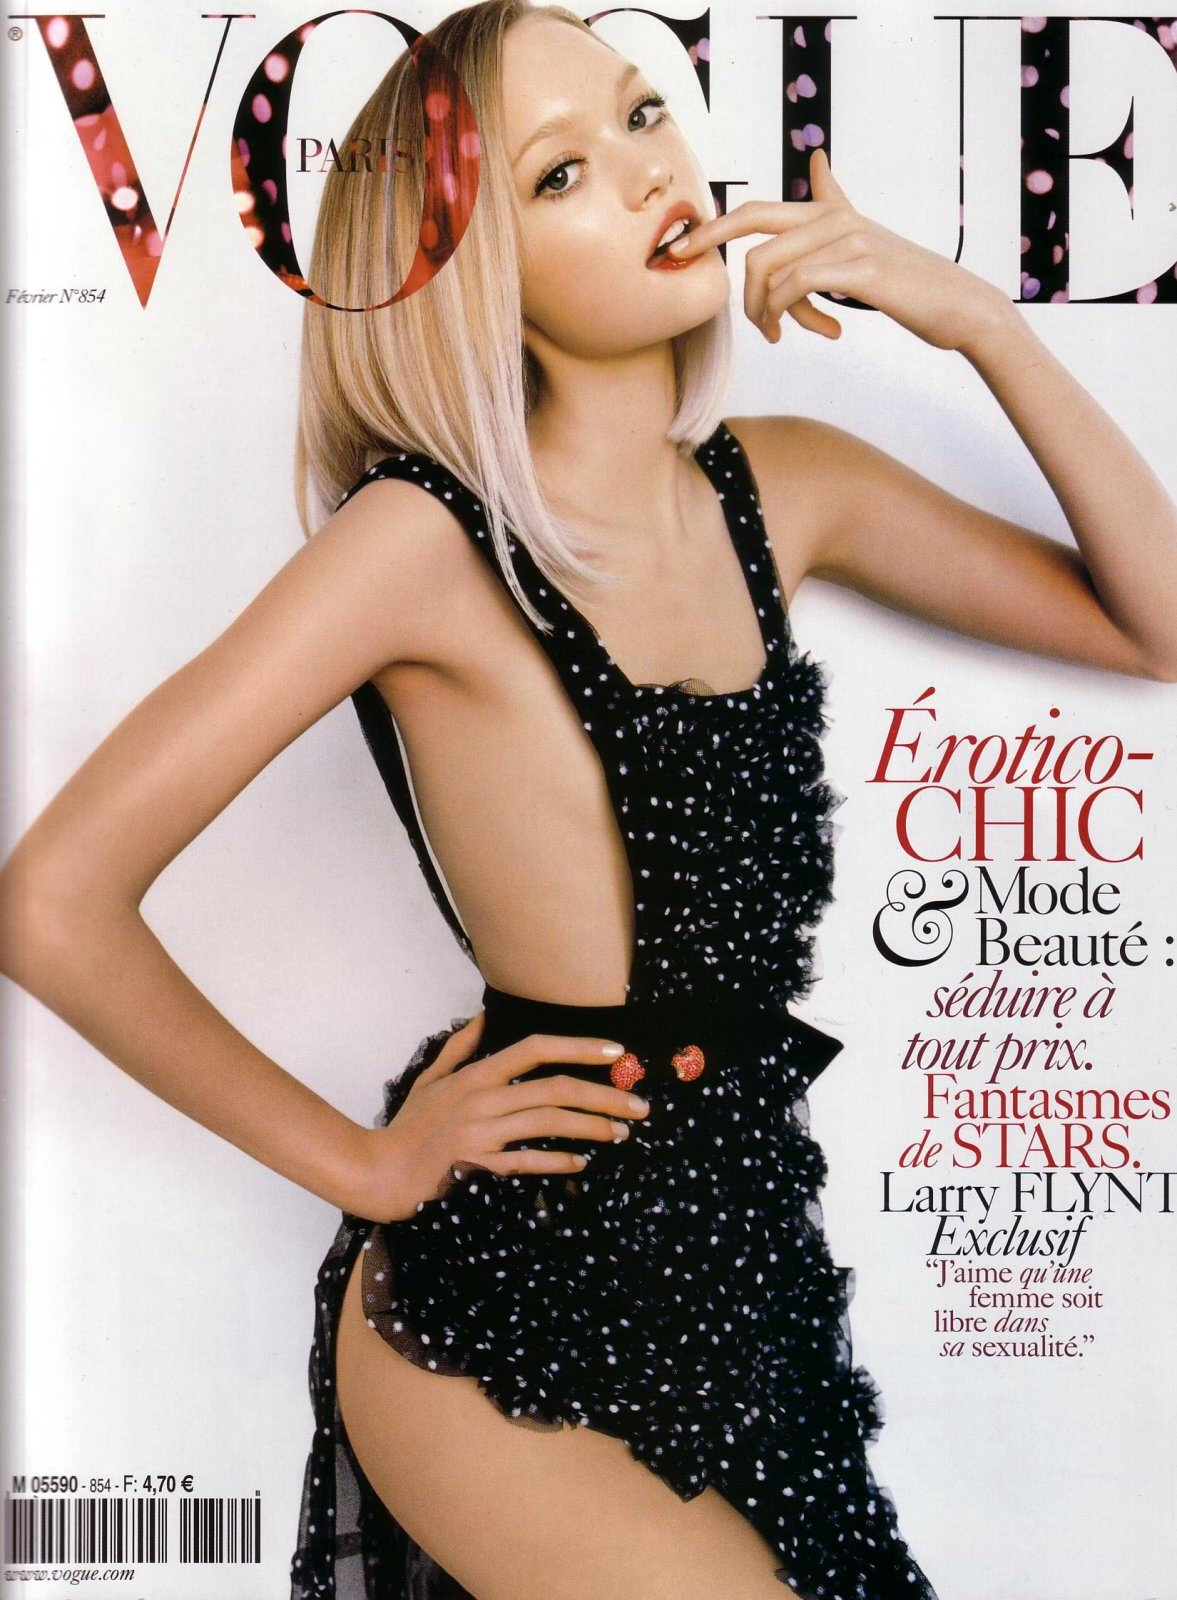 http://1.bp.blogspot.com/-RqHq7dO2pKc/TdEWbAK9FtI/AAAAAAAAOgg/ml4MCPaJlaY/s1600/Gemma+Ward+%2528Vogue+France%252C+Feb+2005%2529.jpg